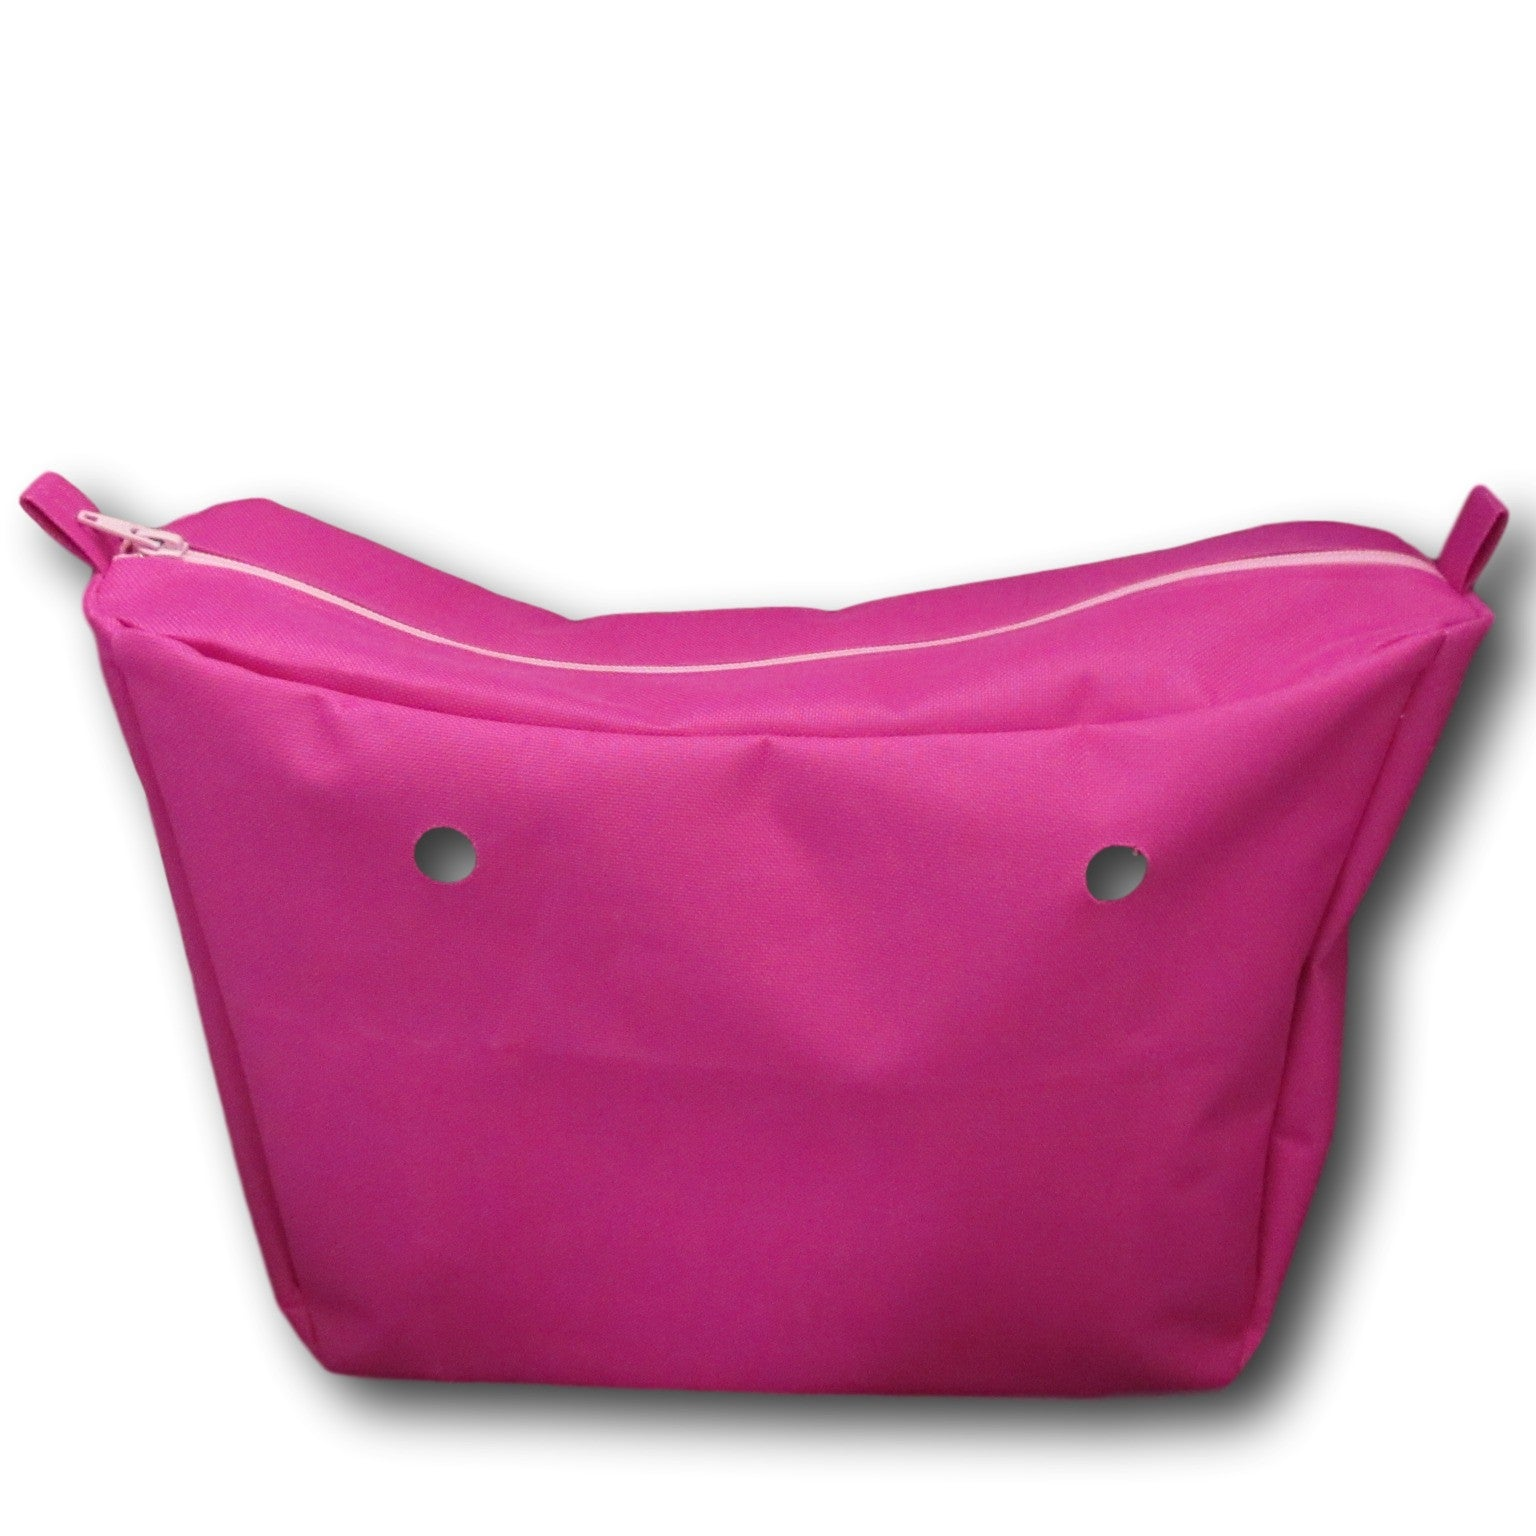 SLO Fashion Petite zippered Insert Bag